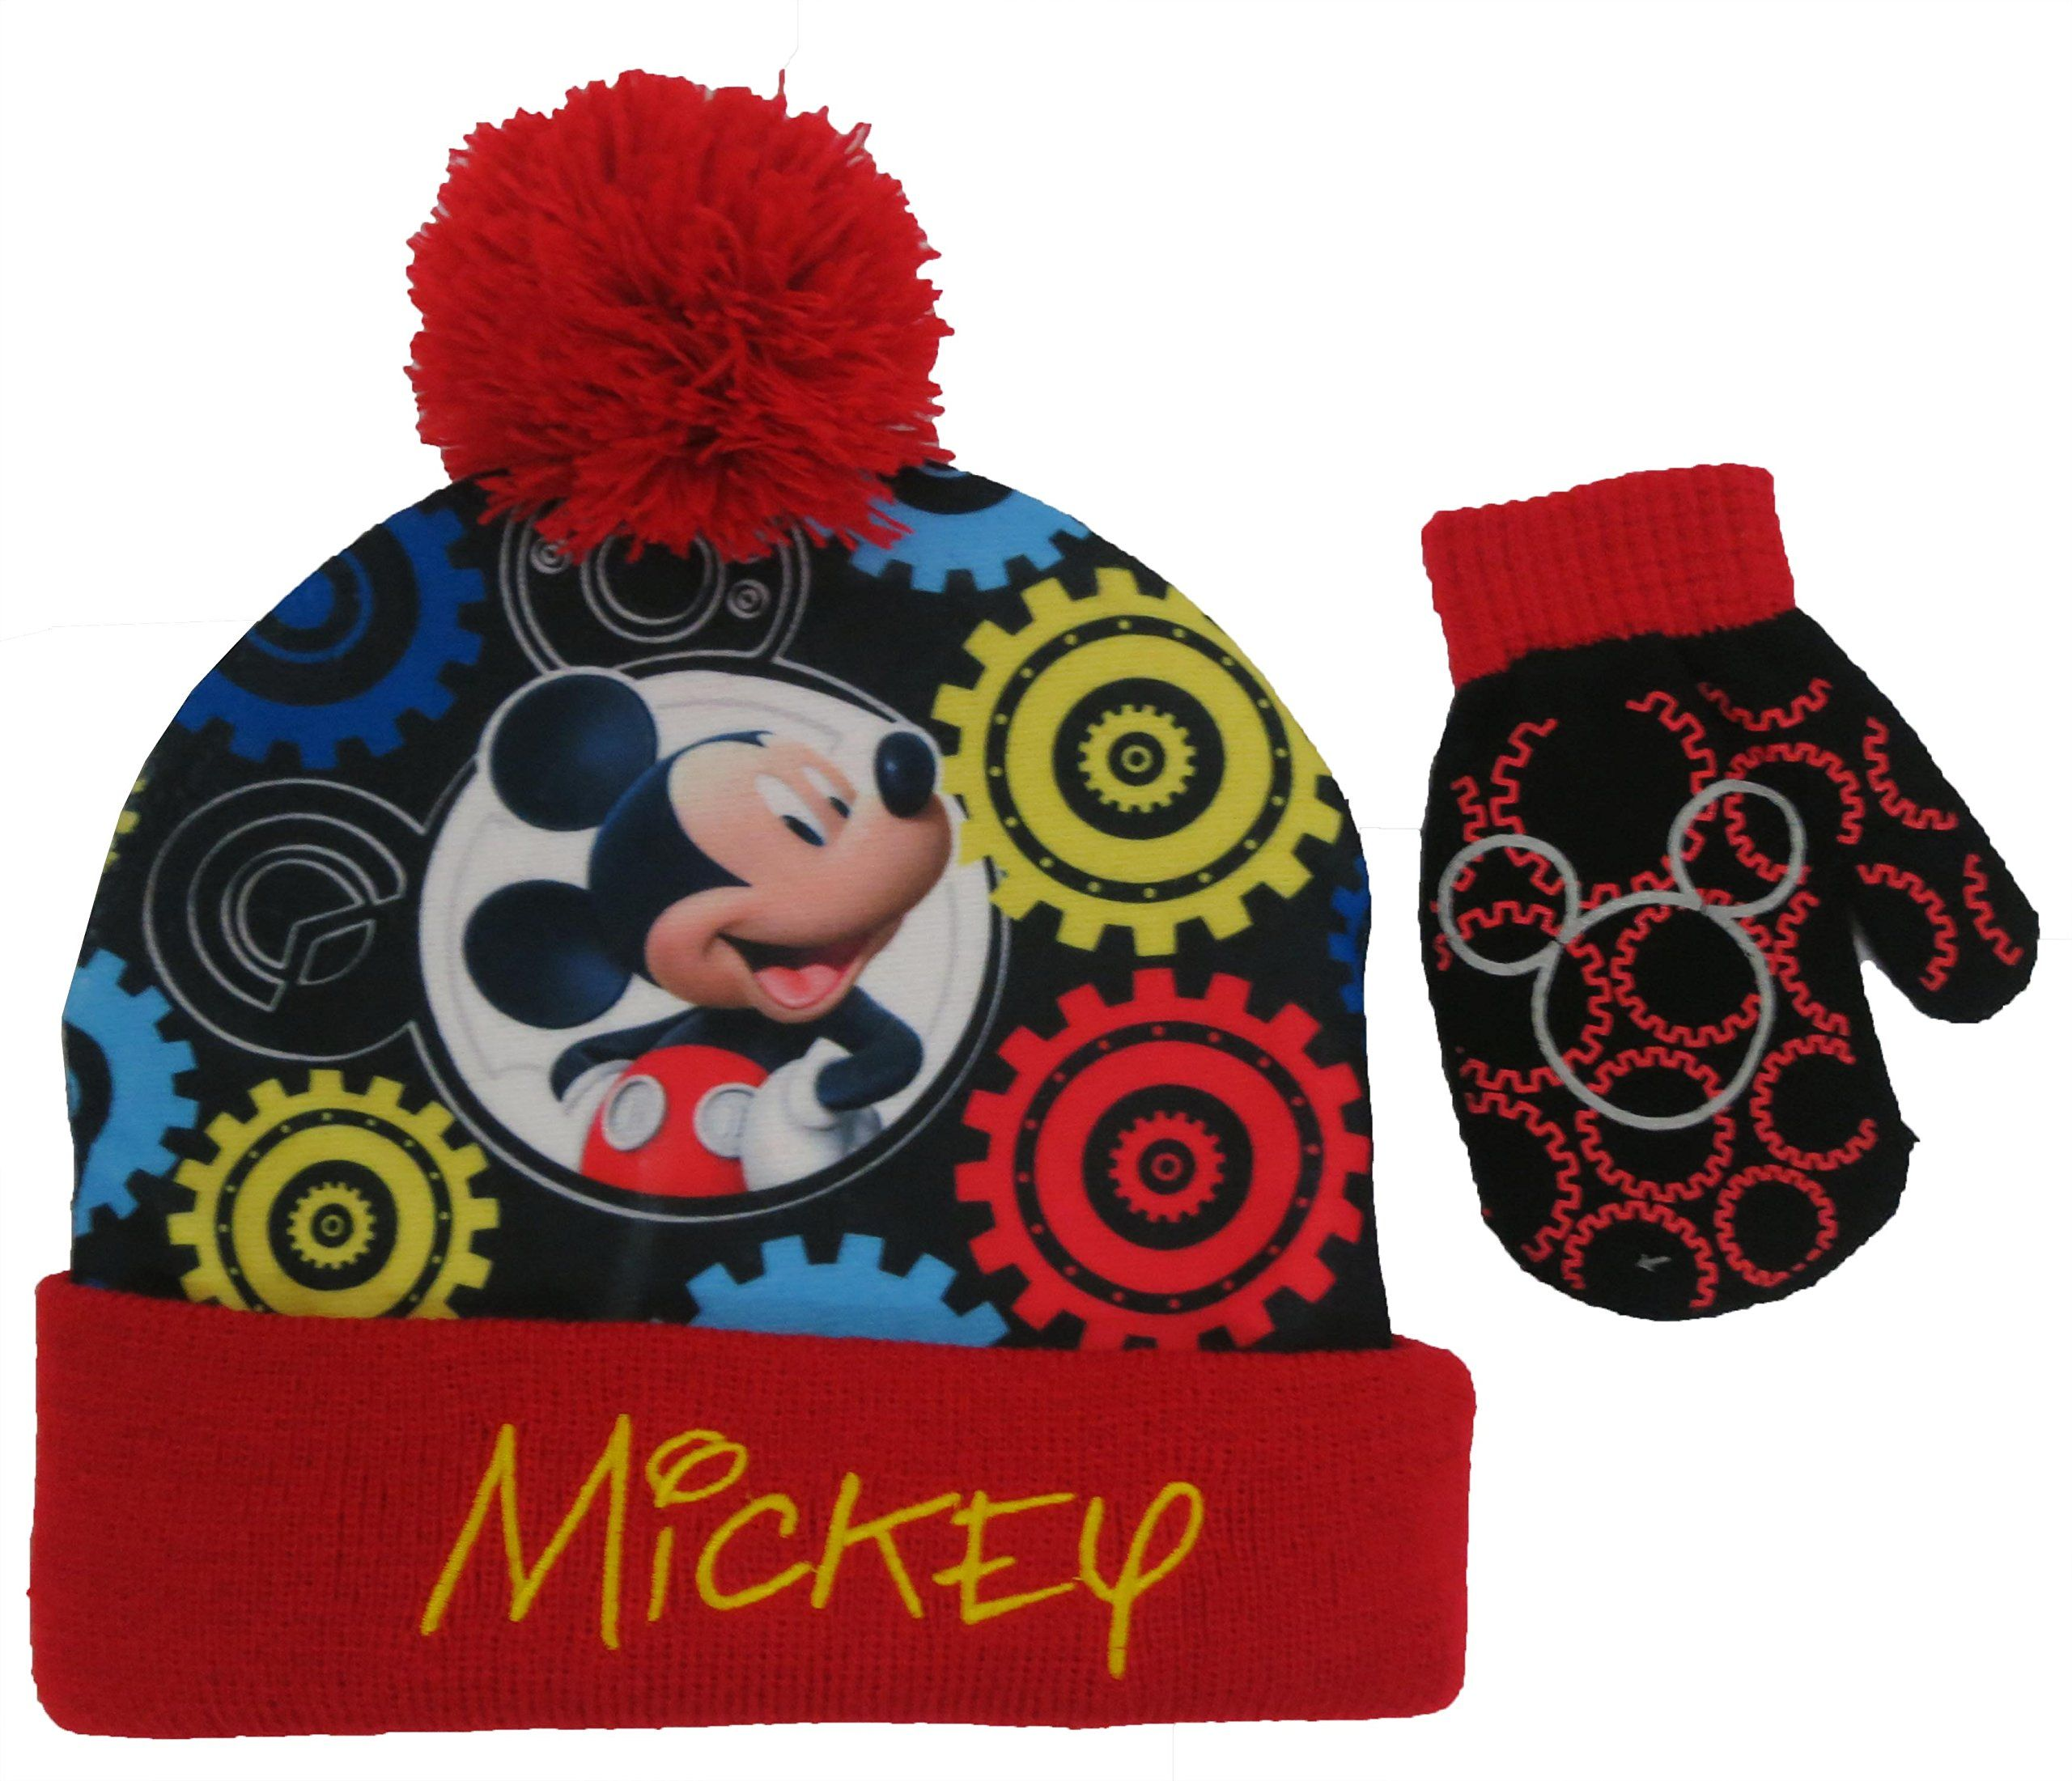 c93a575052a Disney Mickey Mouse Clubhouse Boys Hat and Mitten Set - Toddler  4013 .  Wear Your Favorite Disney Mickey Mouse Clubhouse Character On Your Hands  and Head To ...